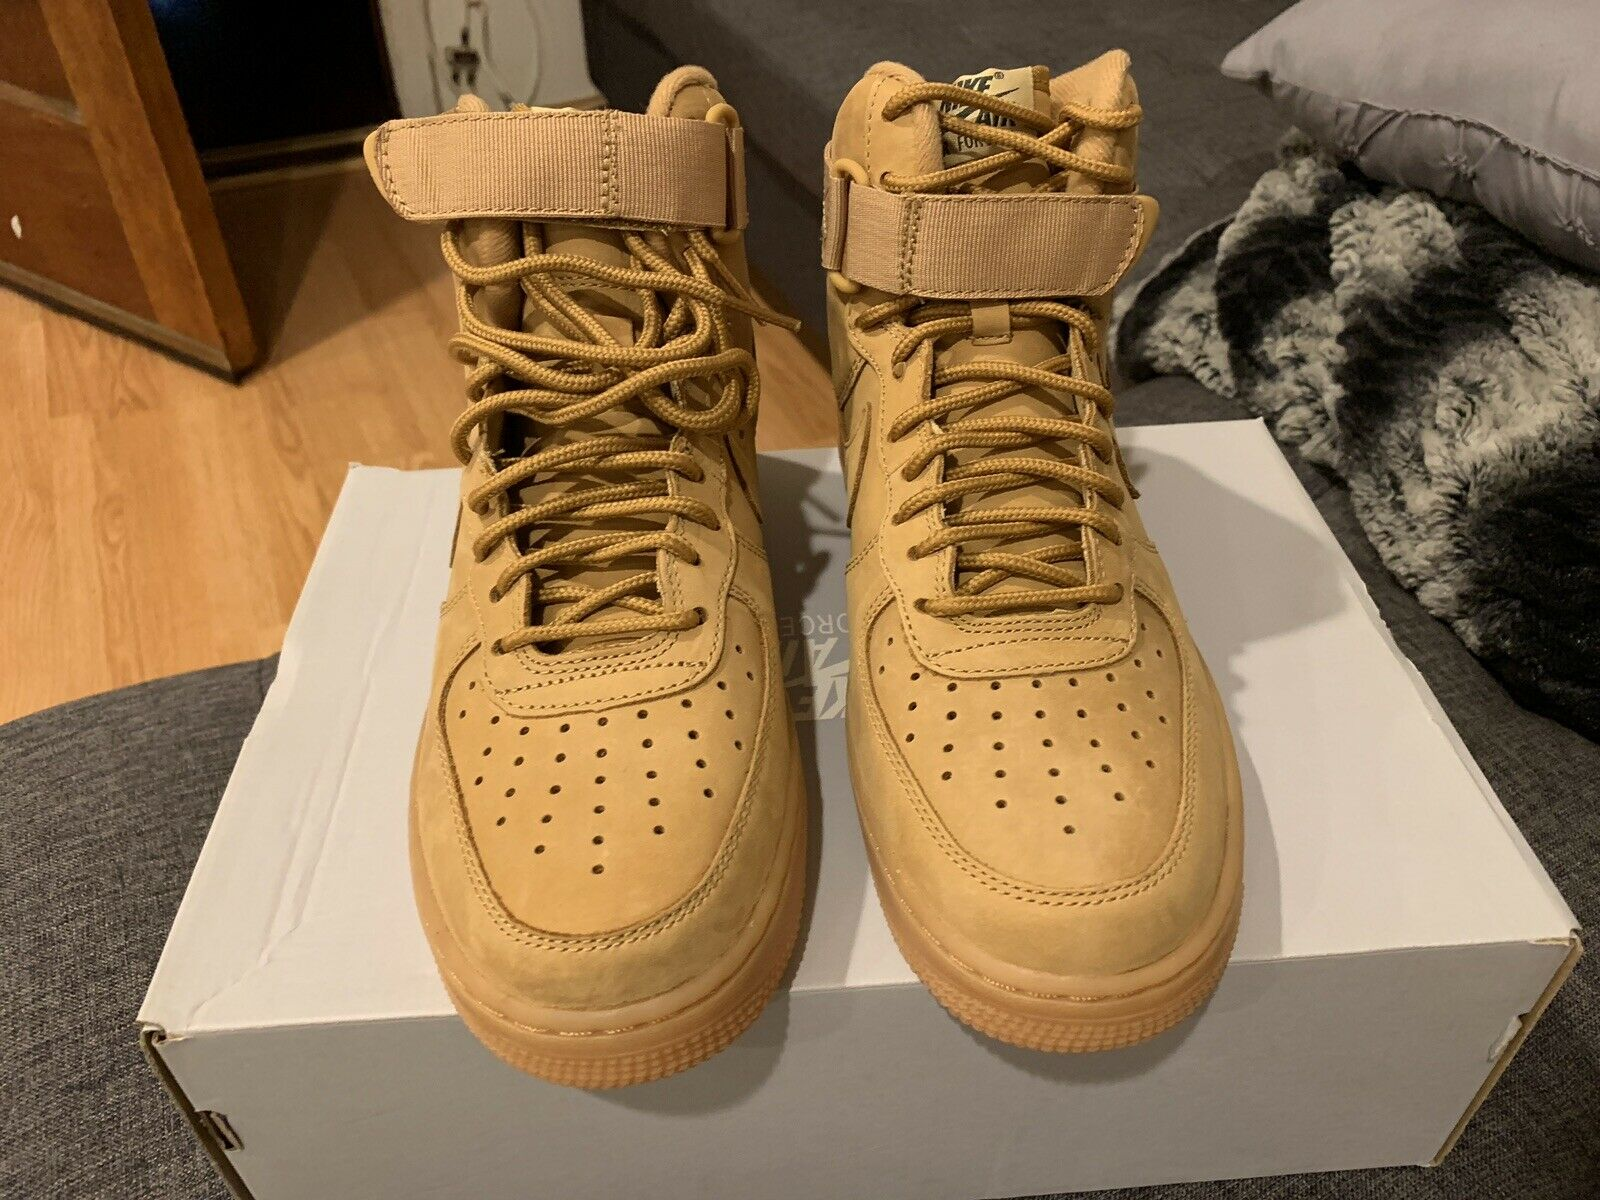 Women's Nike Air Force 1 Brand New    Size 8 Women's